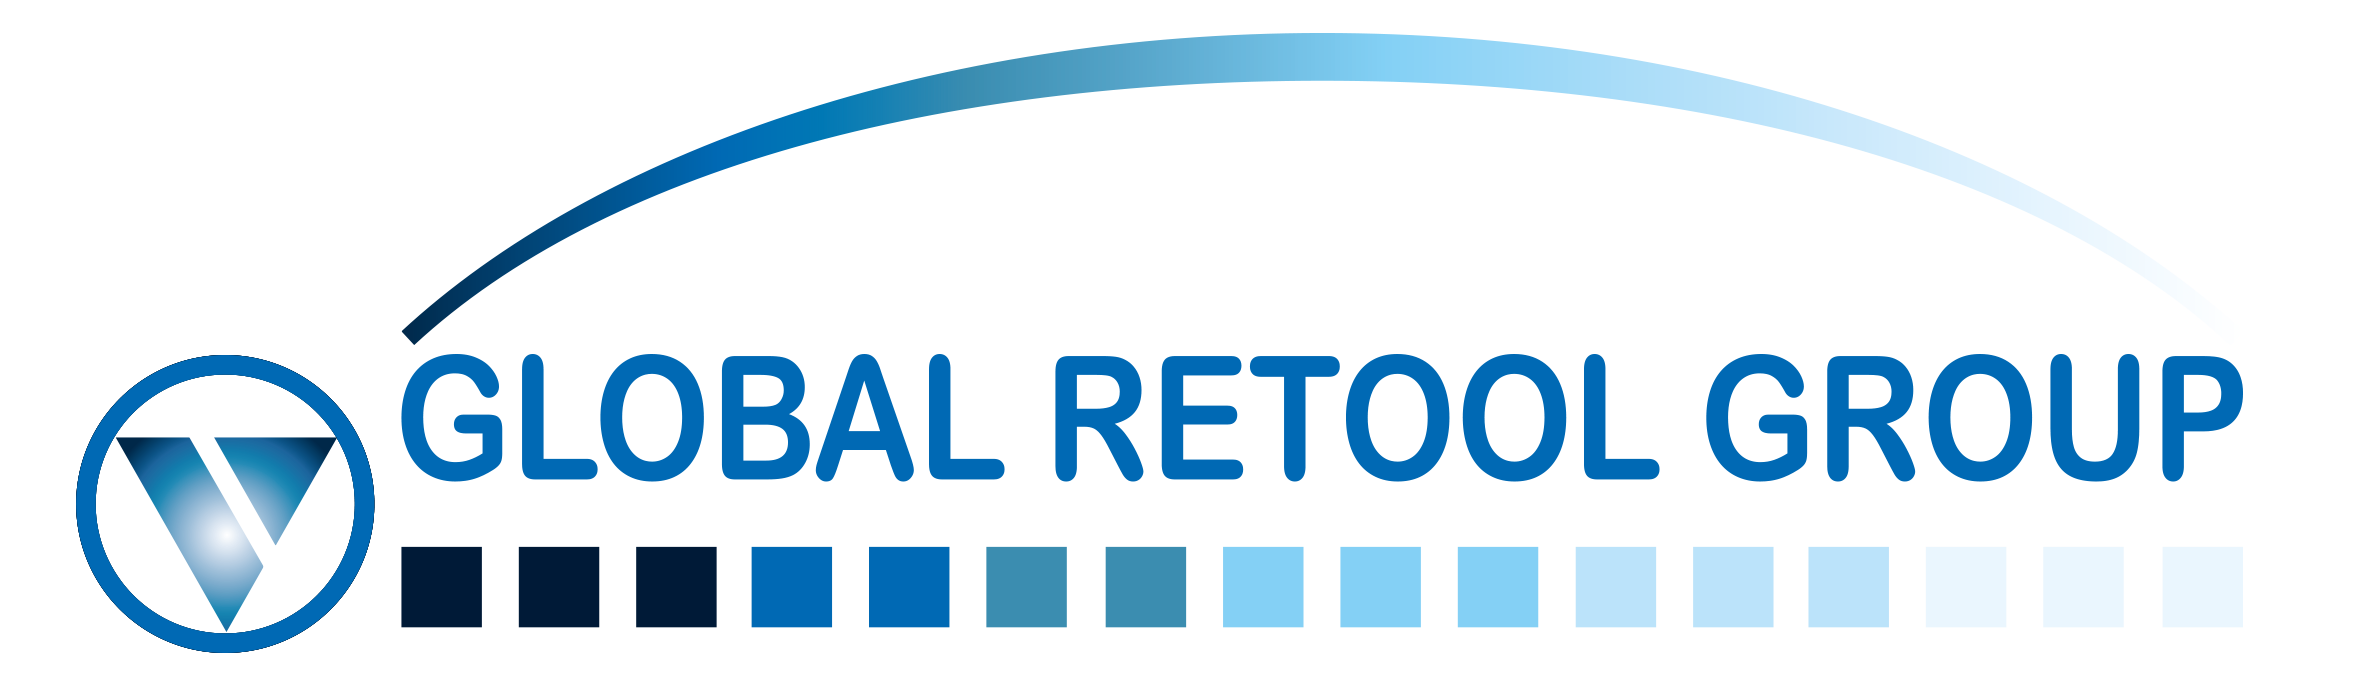 Global Retool Group GmbH